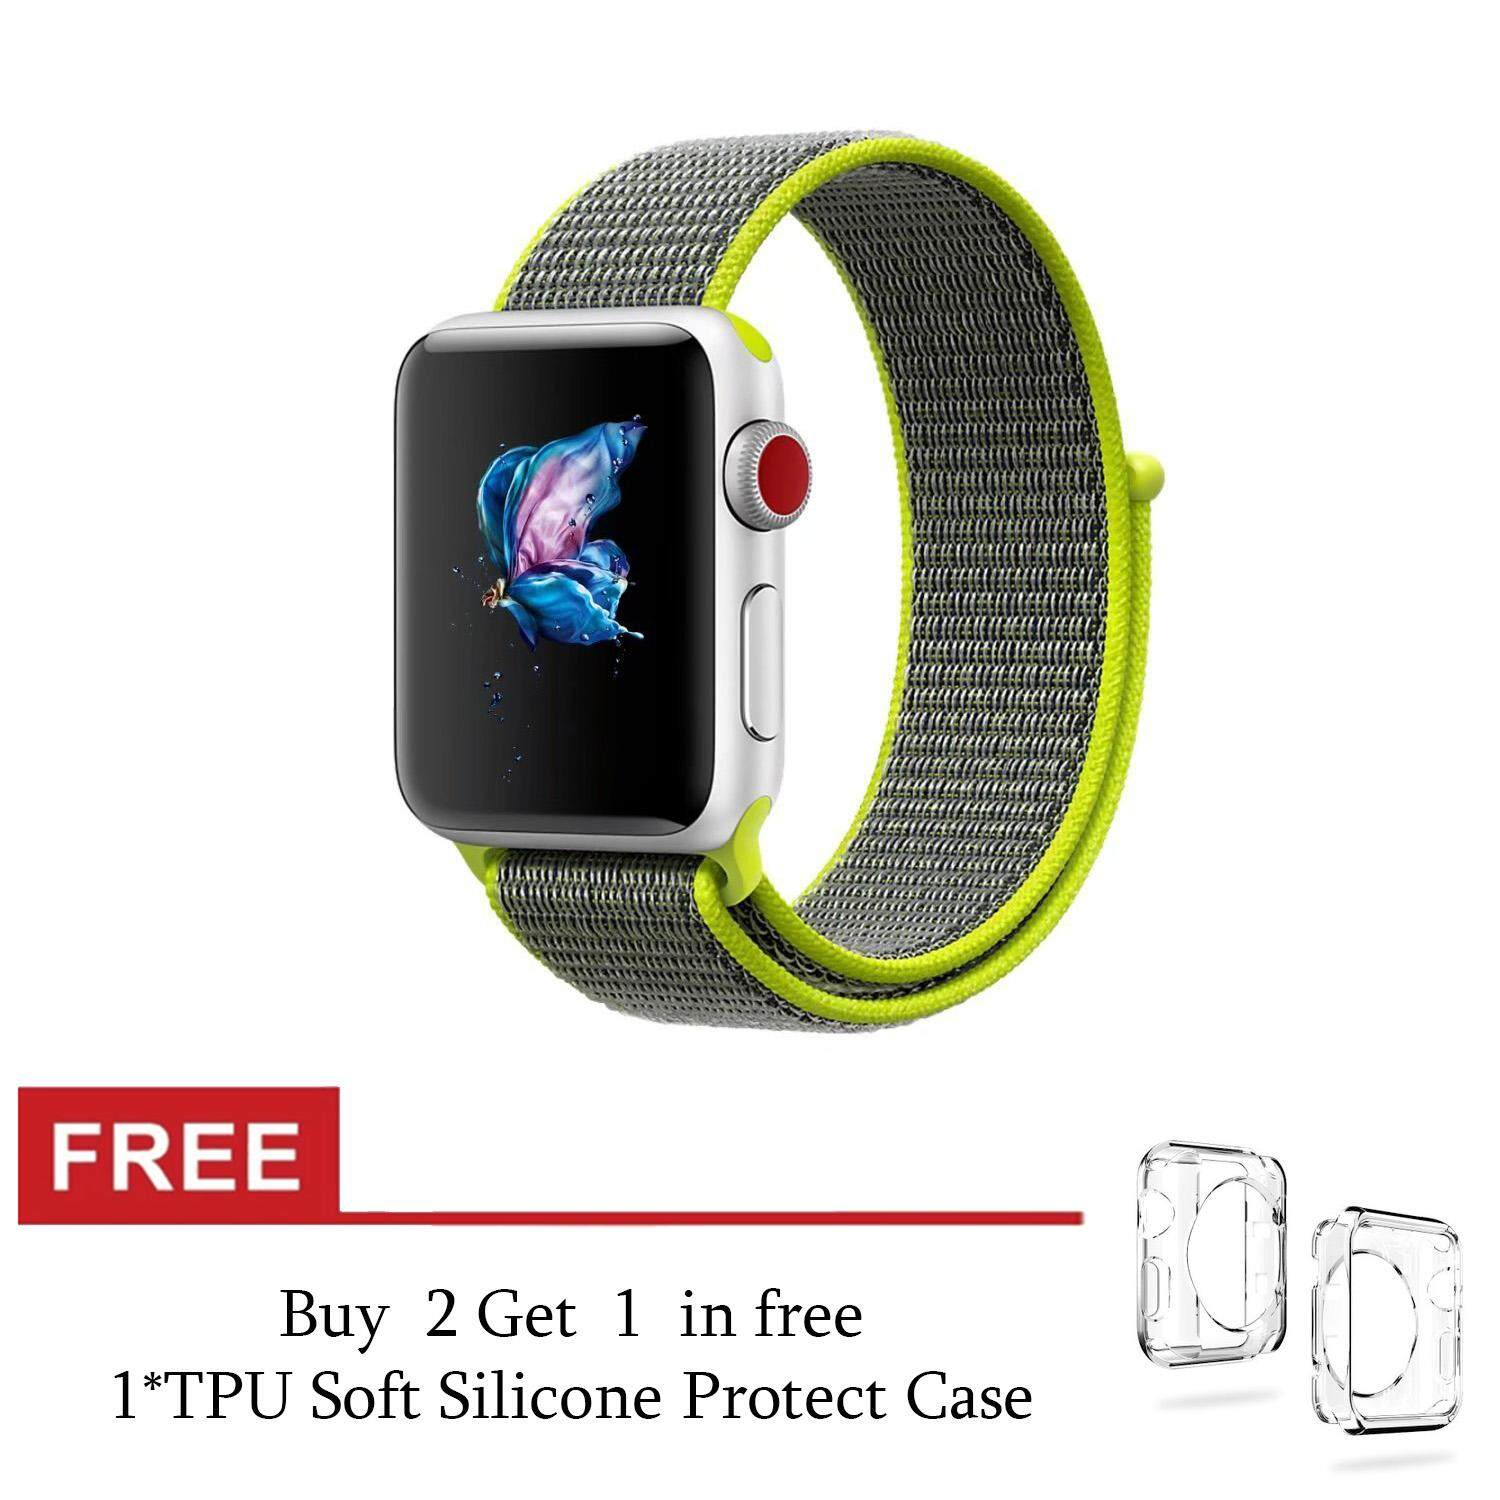 Brand New Lightweight Soft Breathable Woven Nylon Replacement Sport Loop Band For Iwatch Series 3 2 1 38Mm Intl